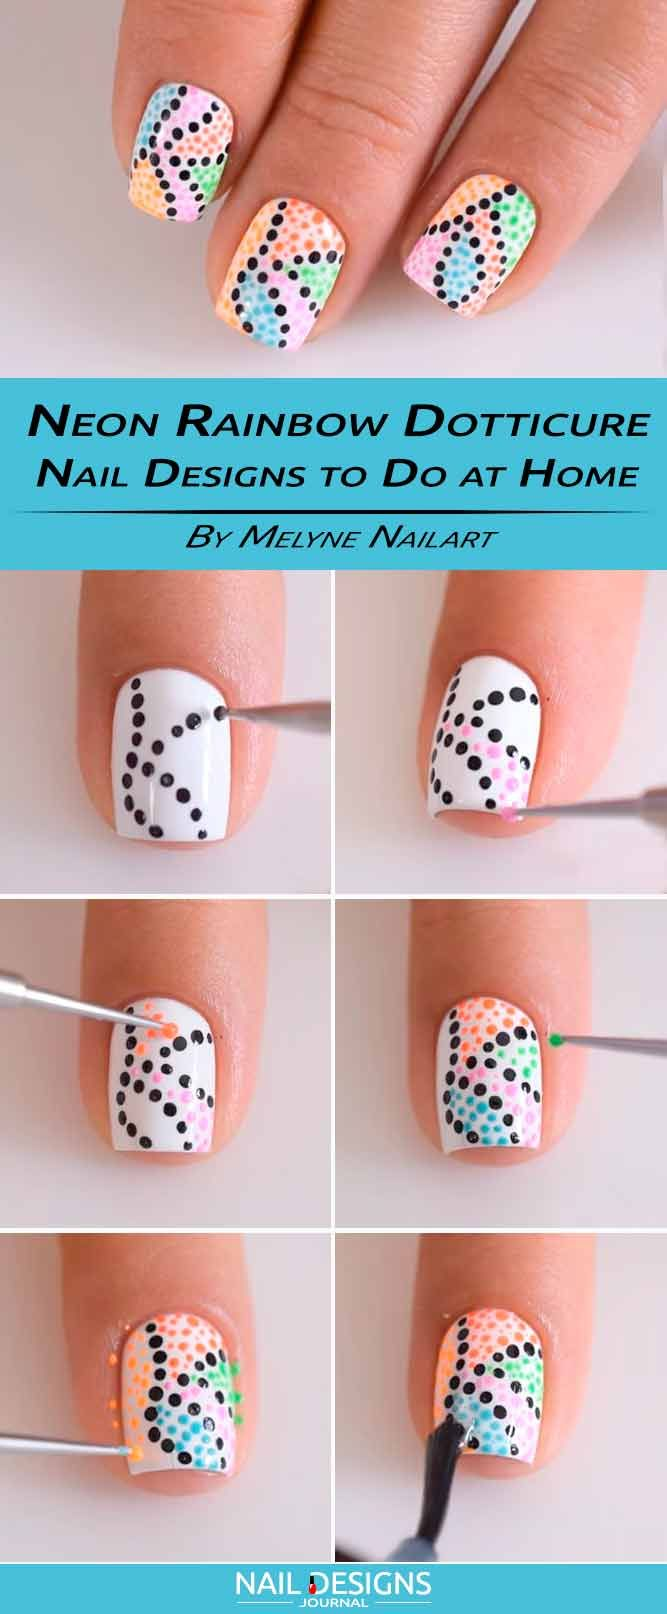 10 Step By Step Tutorials How To Do Nail Designs At Home